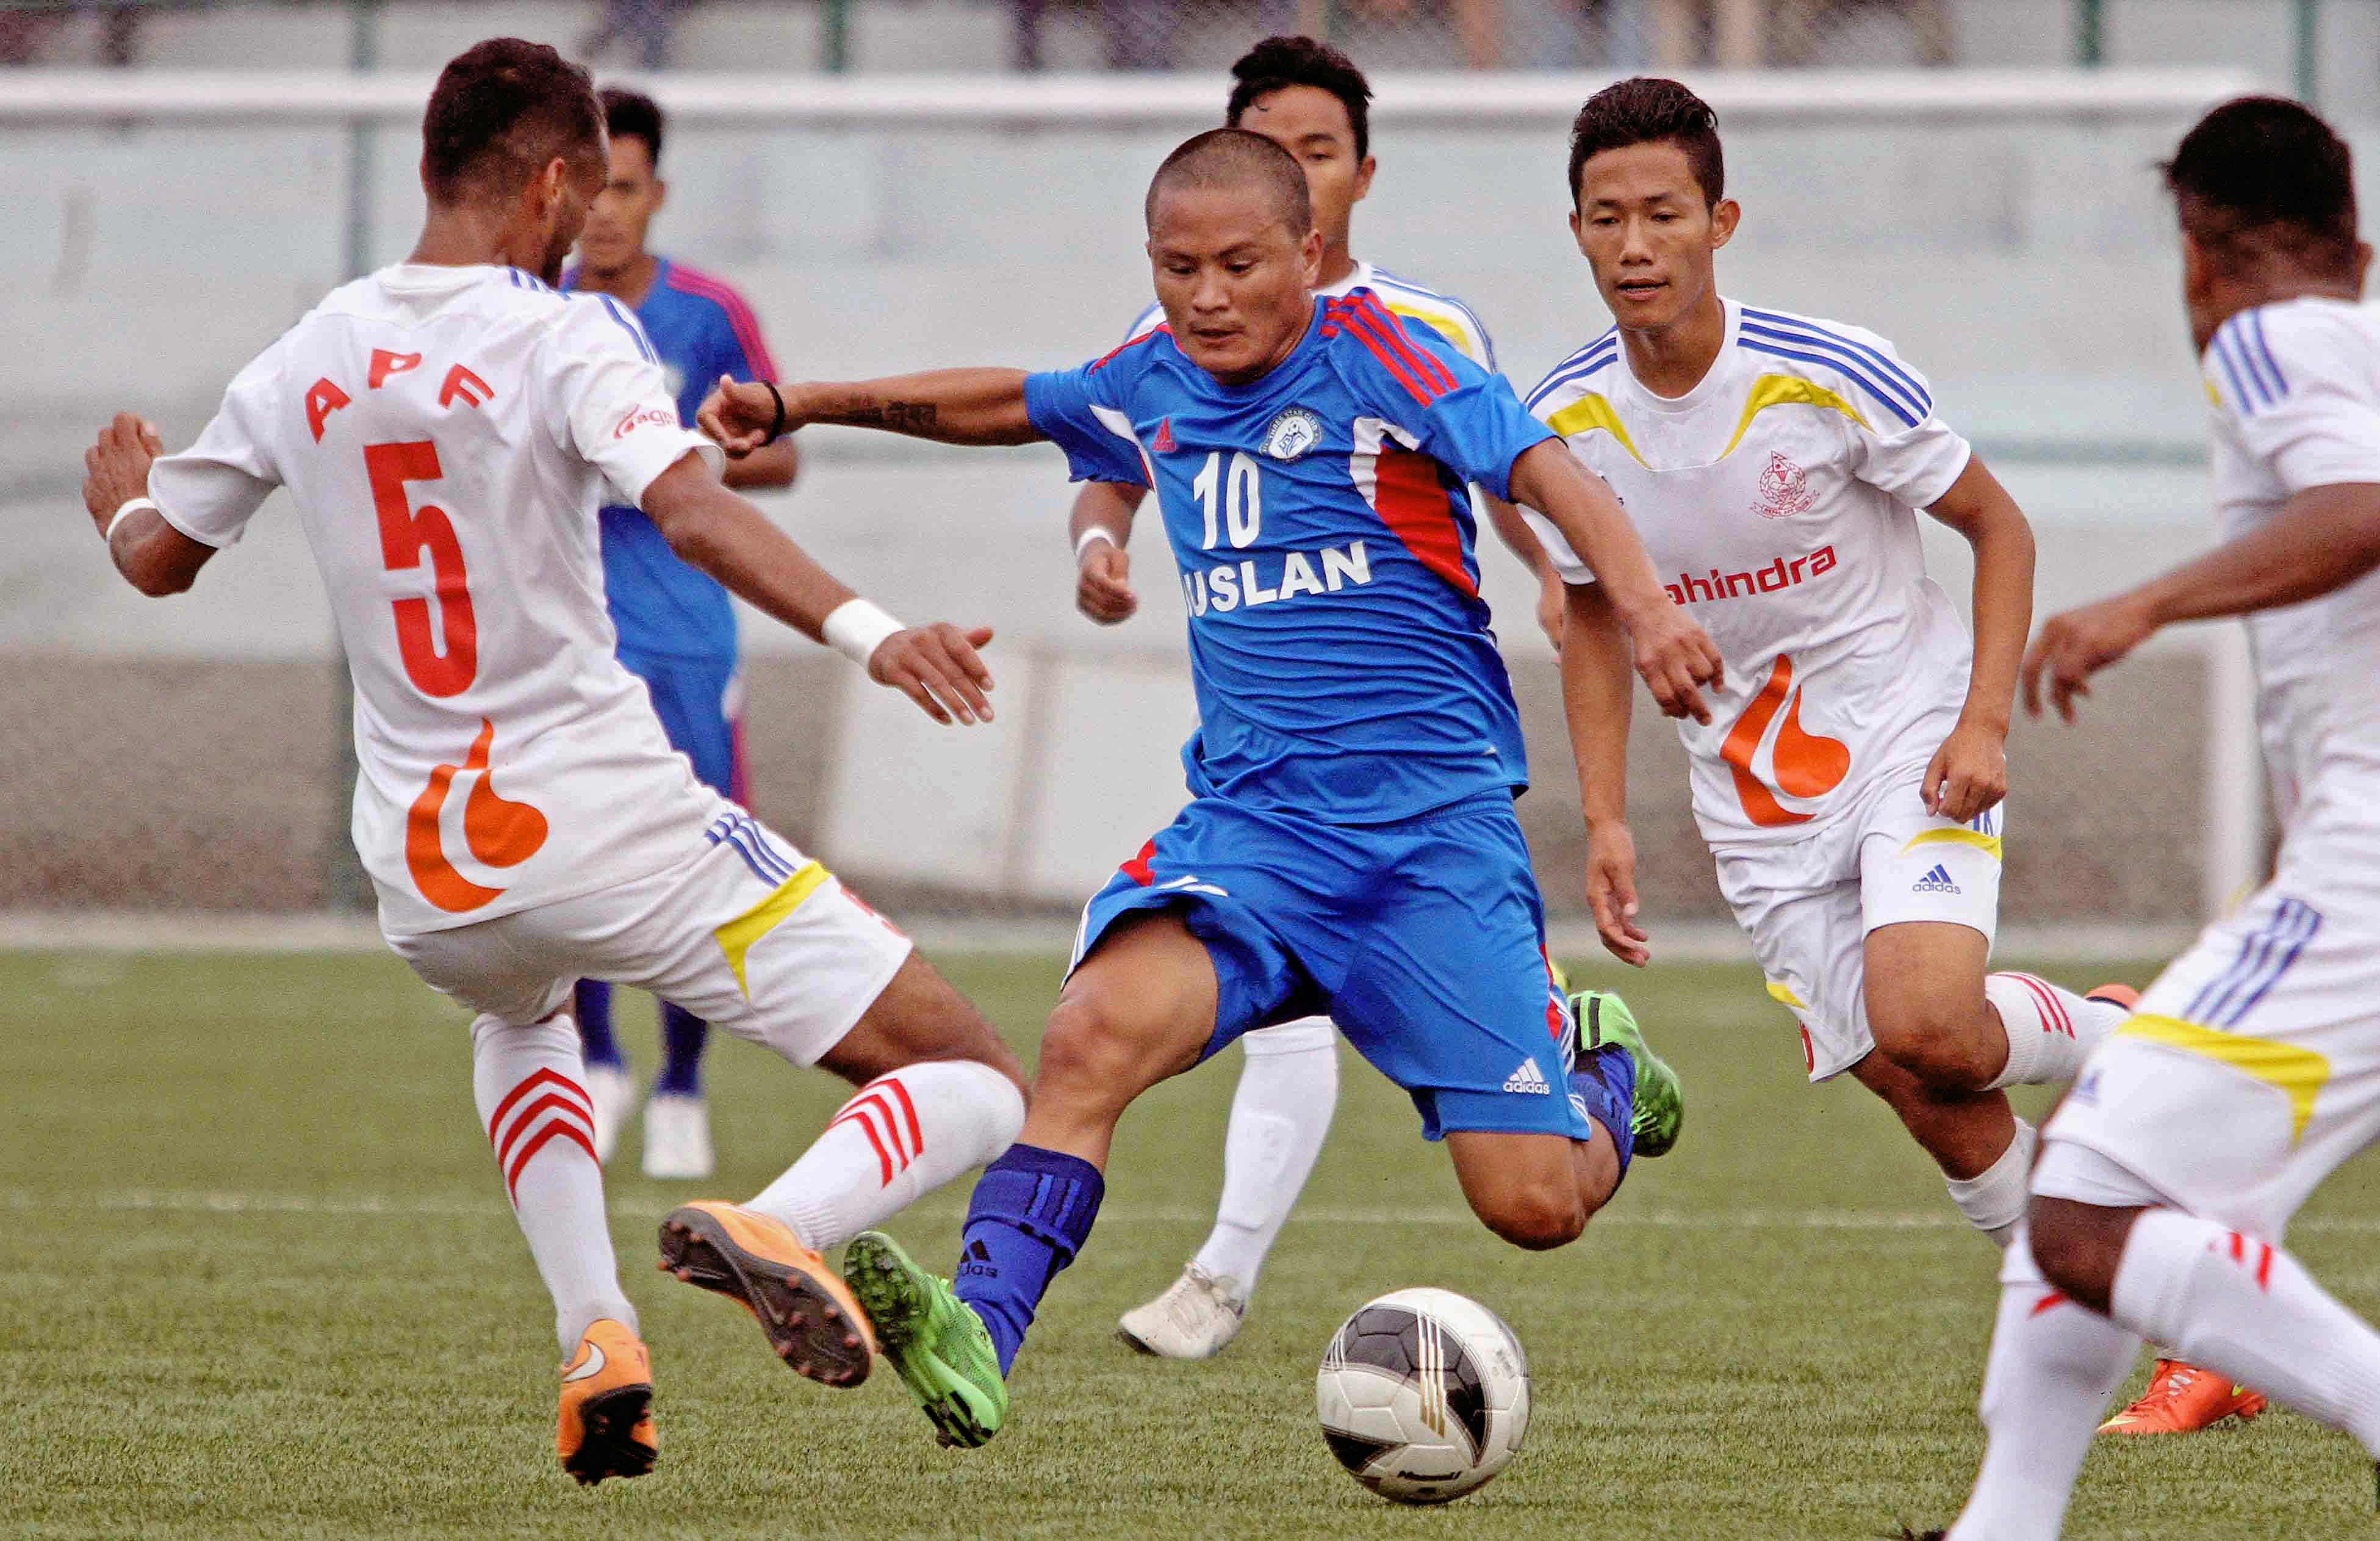 Jagjit Shrestha (center) of Three Star Club dribbles the ball against Nepal APF Club players during their Red Bull National League match at ANFA Complex in Lalitpur on Tuesday. (Credit Image: Udipt Singh Chhetry)